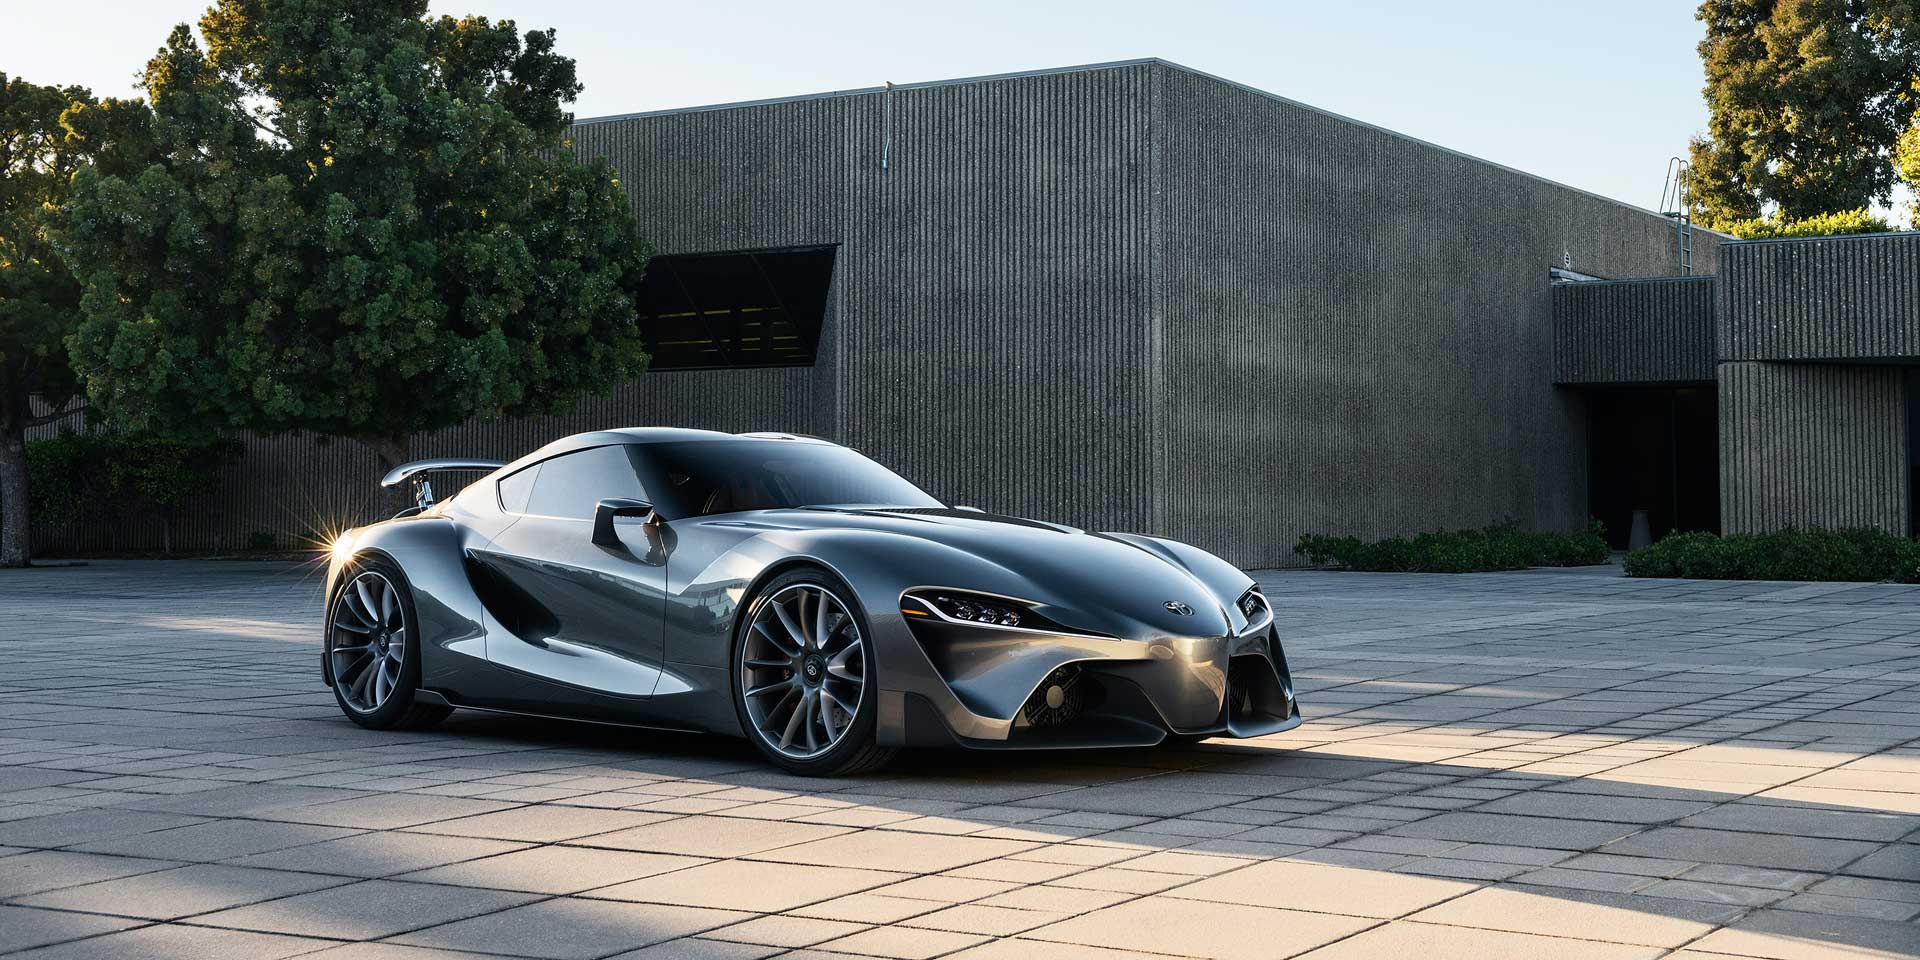 HQ Toyota FT-1 Concept Wallpapers | File 264.42Kb